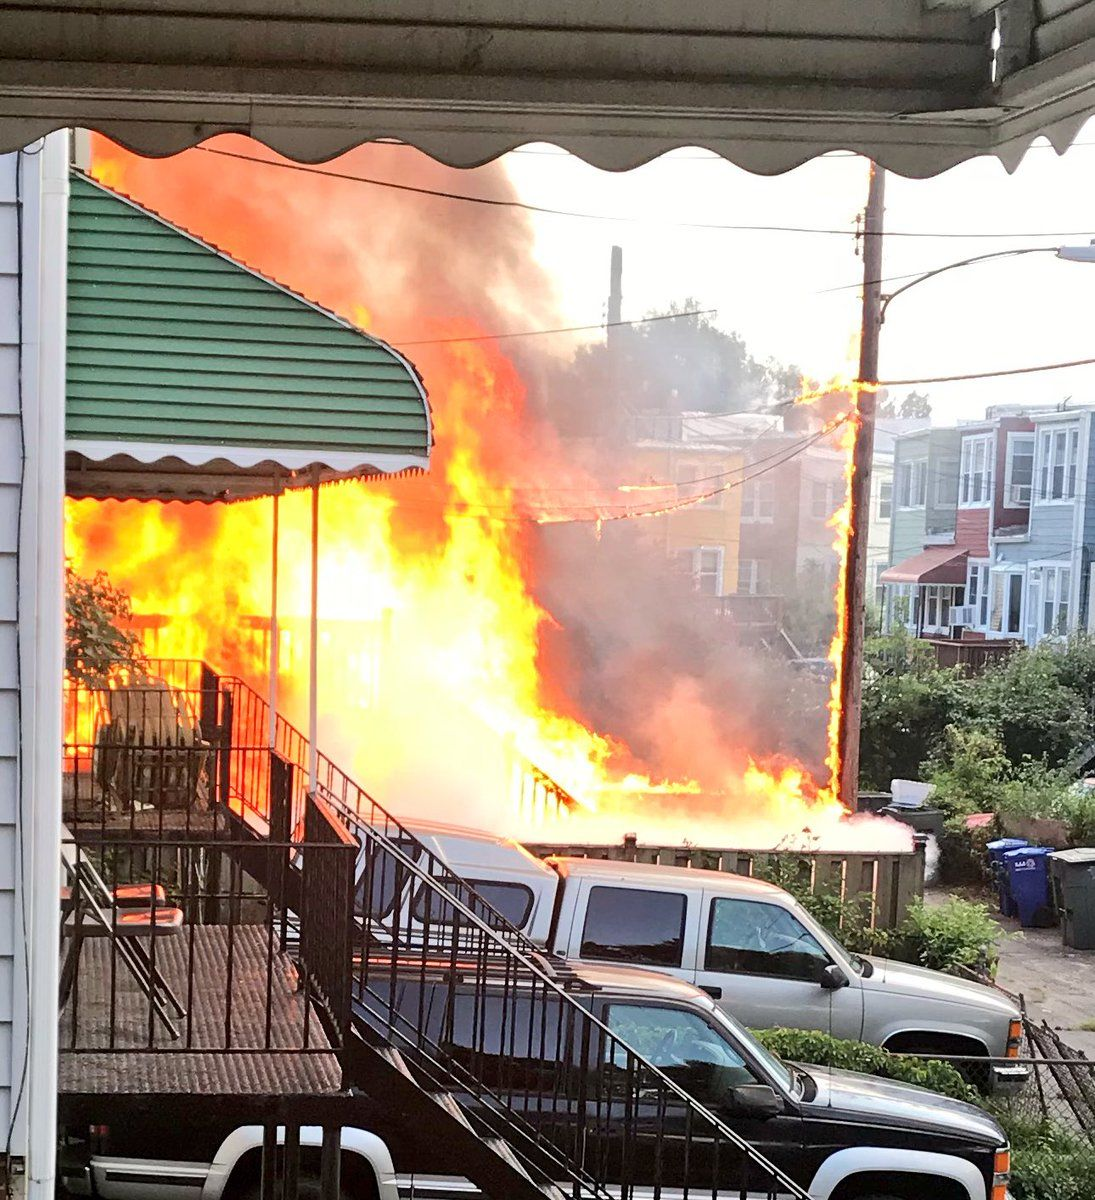 The home to the right of where the fire originated also suffered damages. (Courtesy D.C. Fire and EMS)